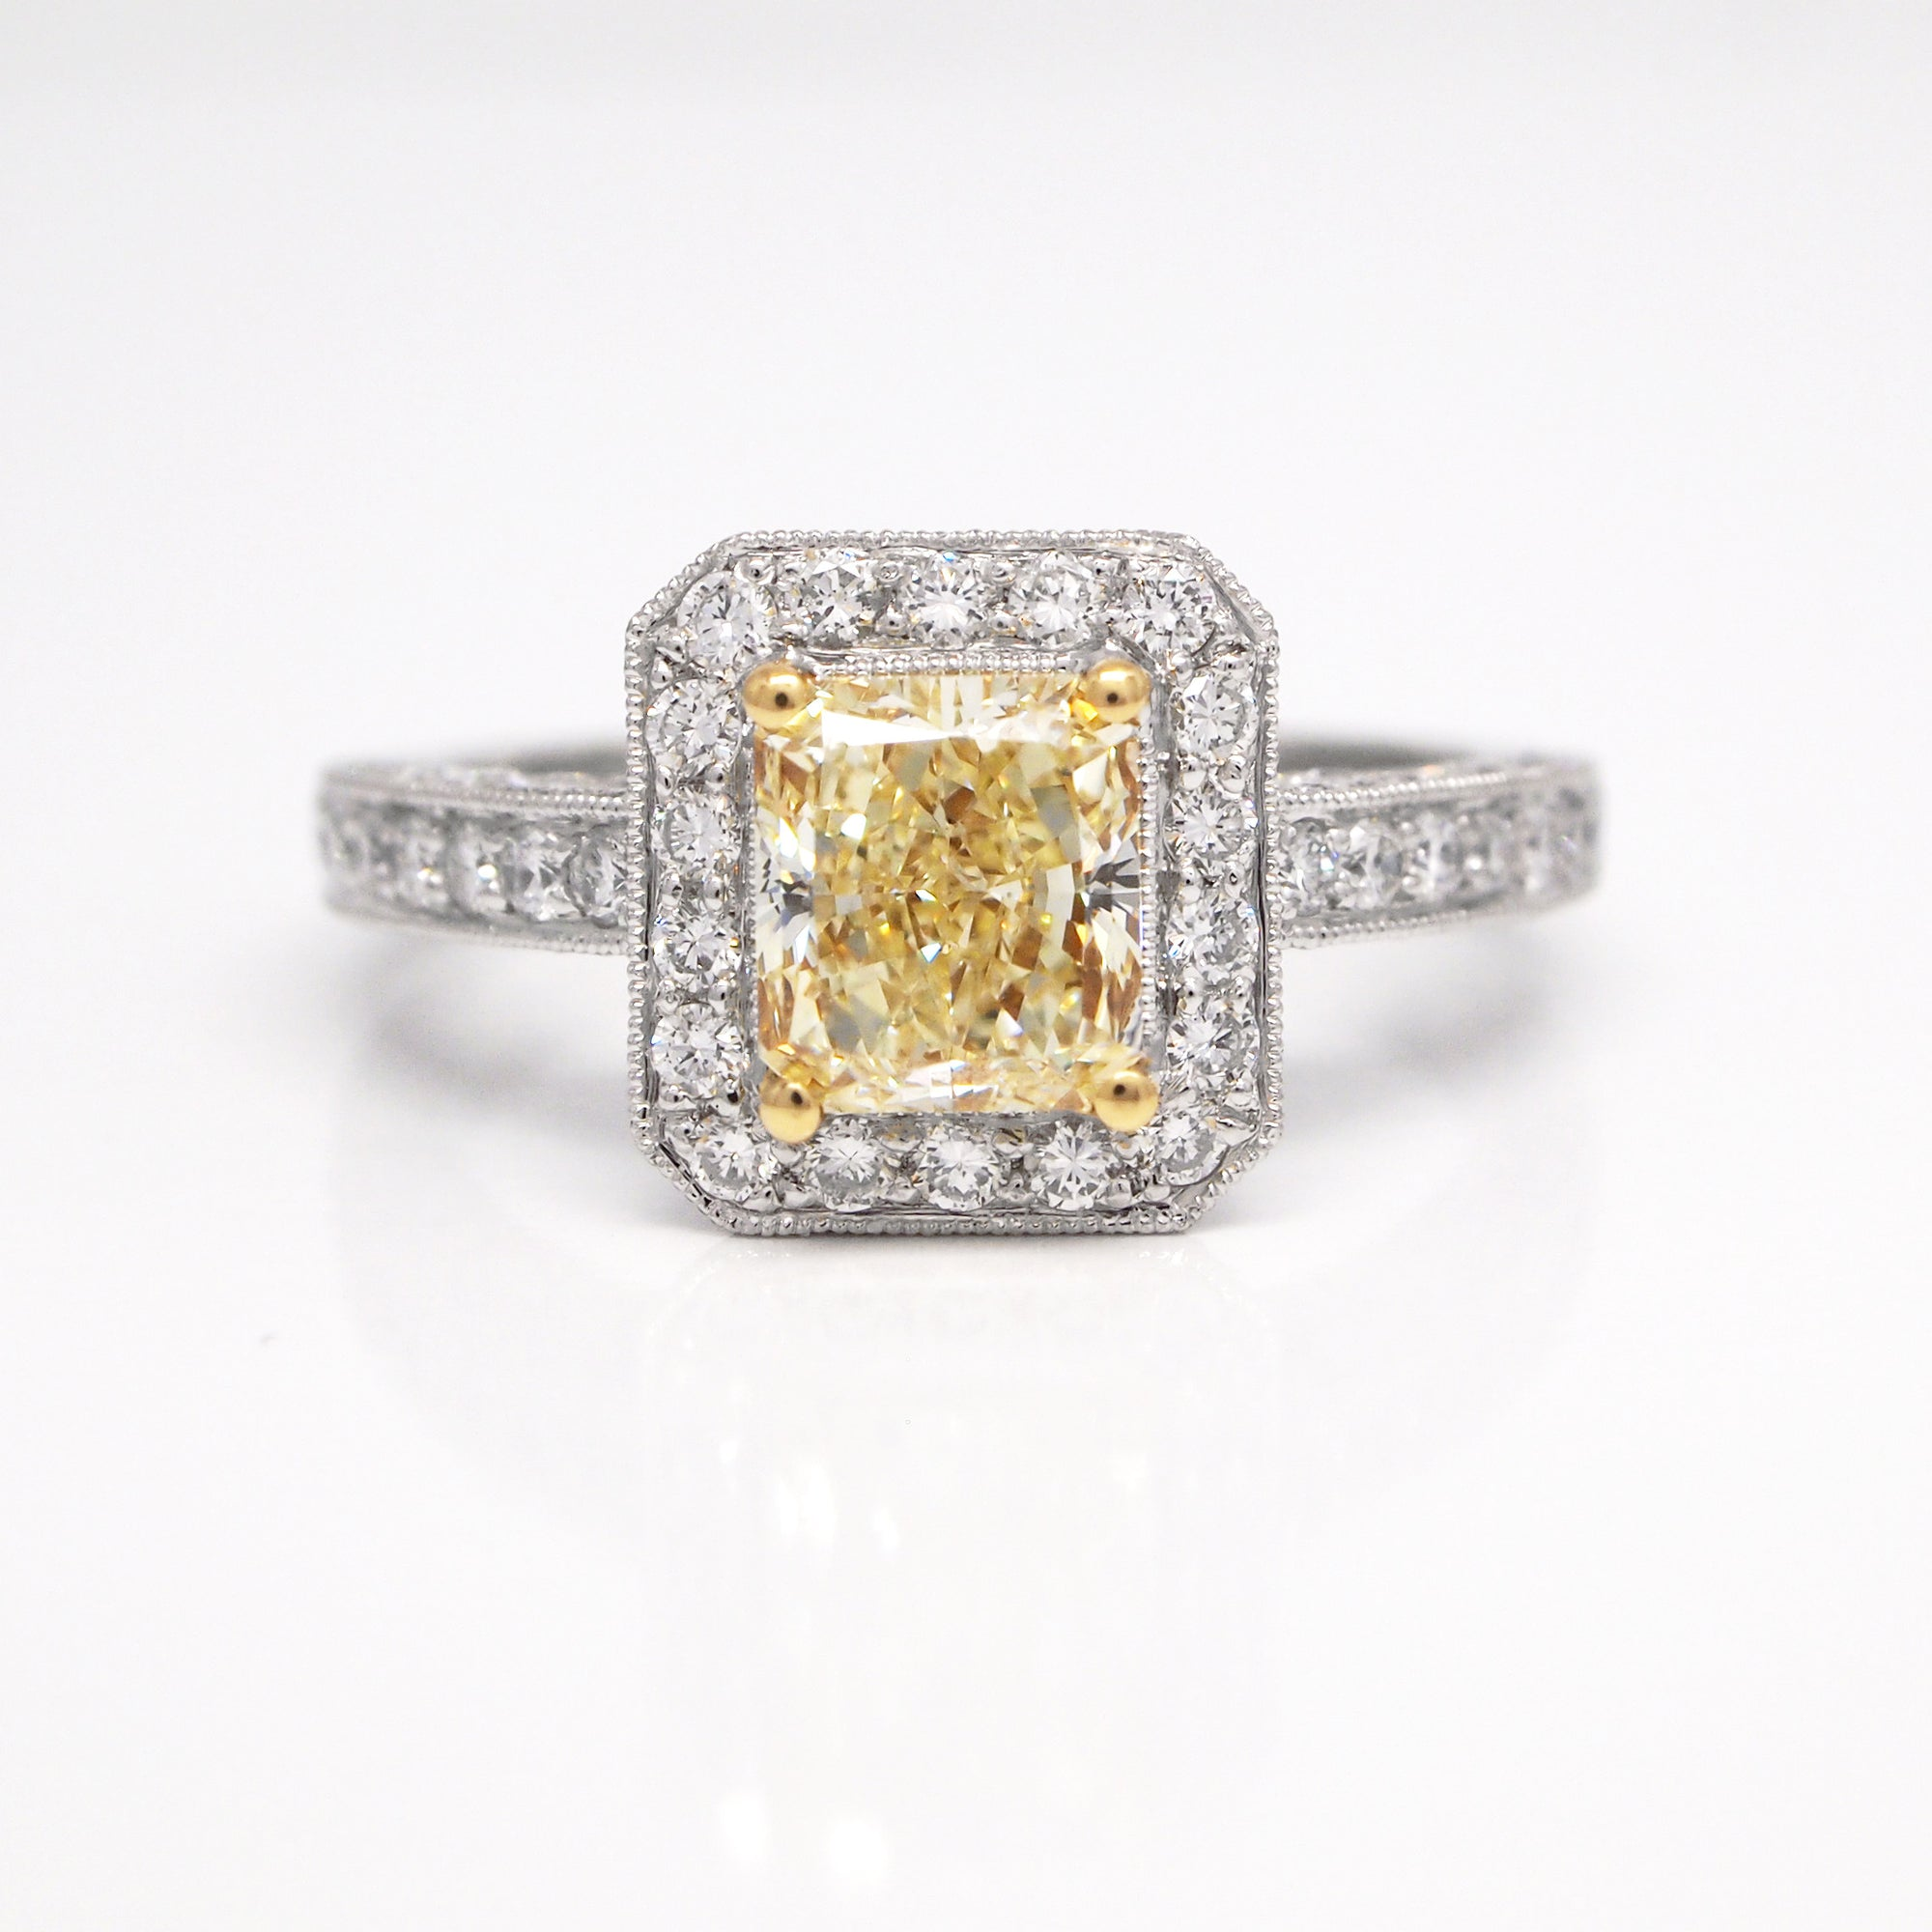 Platinum and 18K white gold pave engagement ring with one 1.39 carat radiant-cut yellow diamond (SI1), and round white diamonds